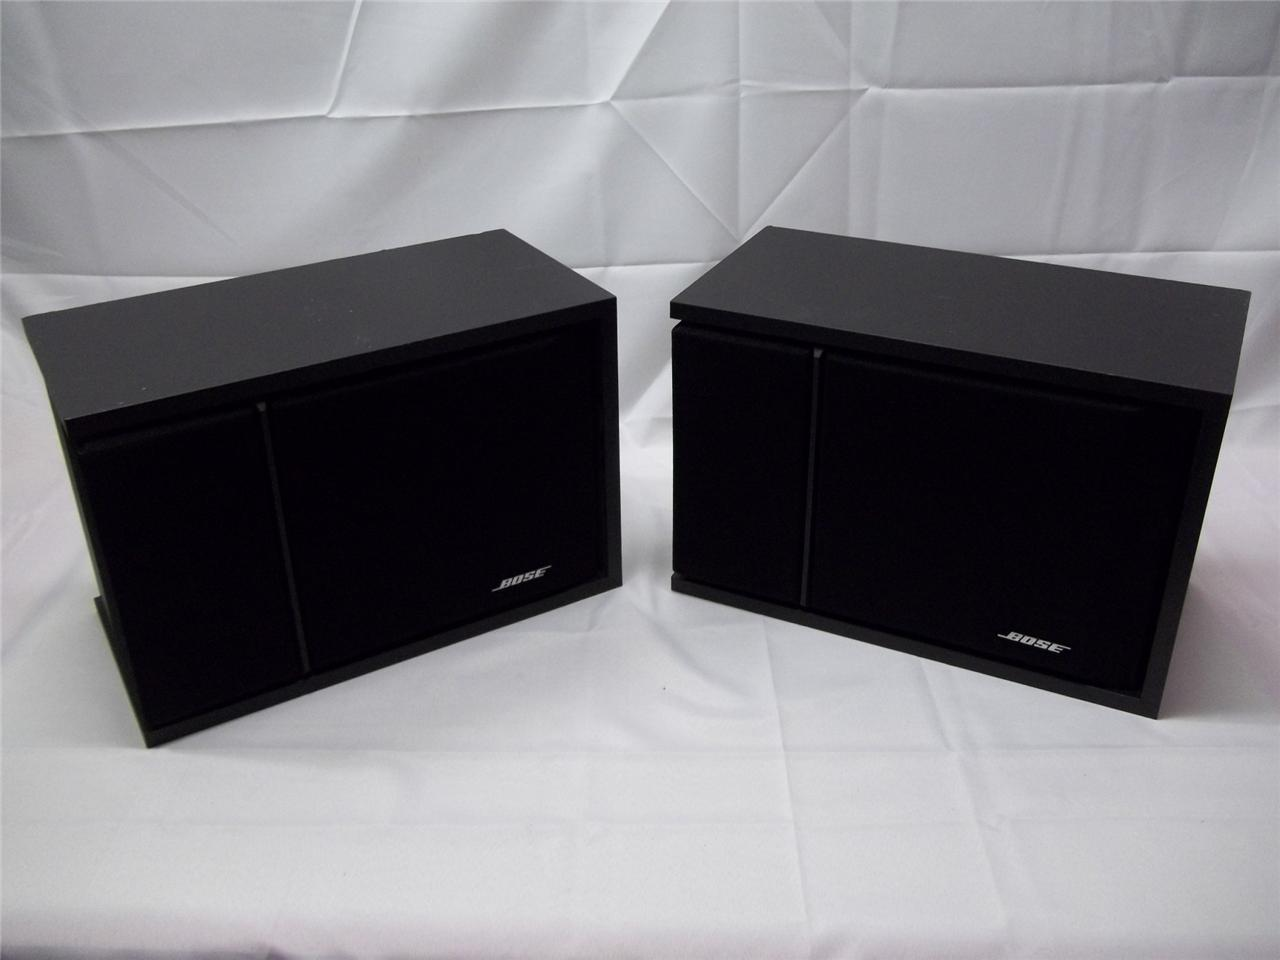 Bose 201 Series III Speakers Black | eBay